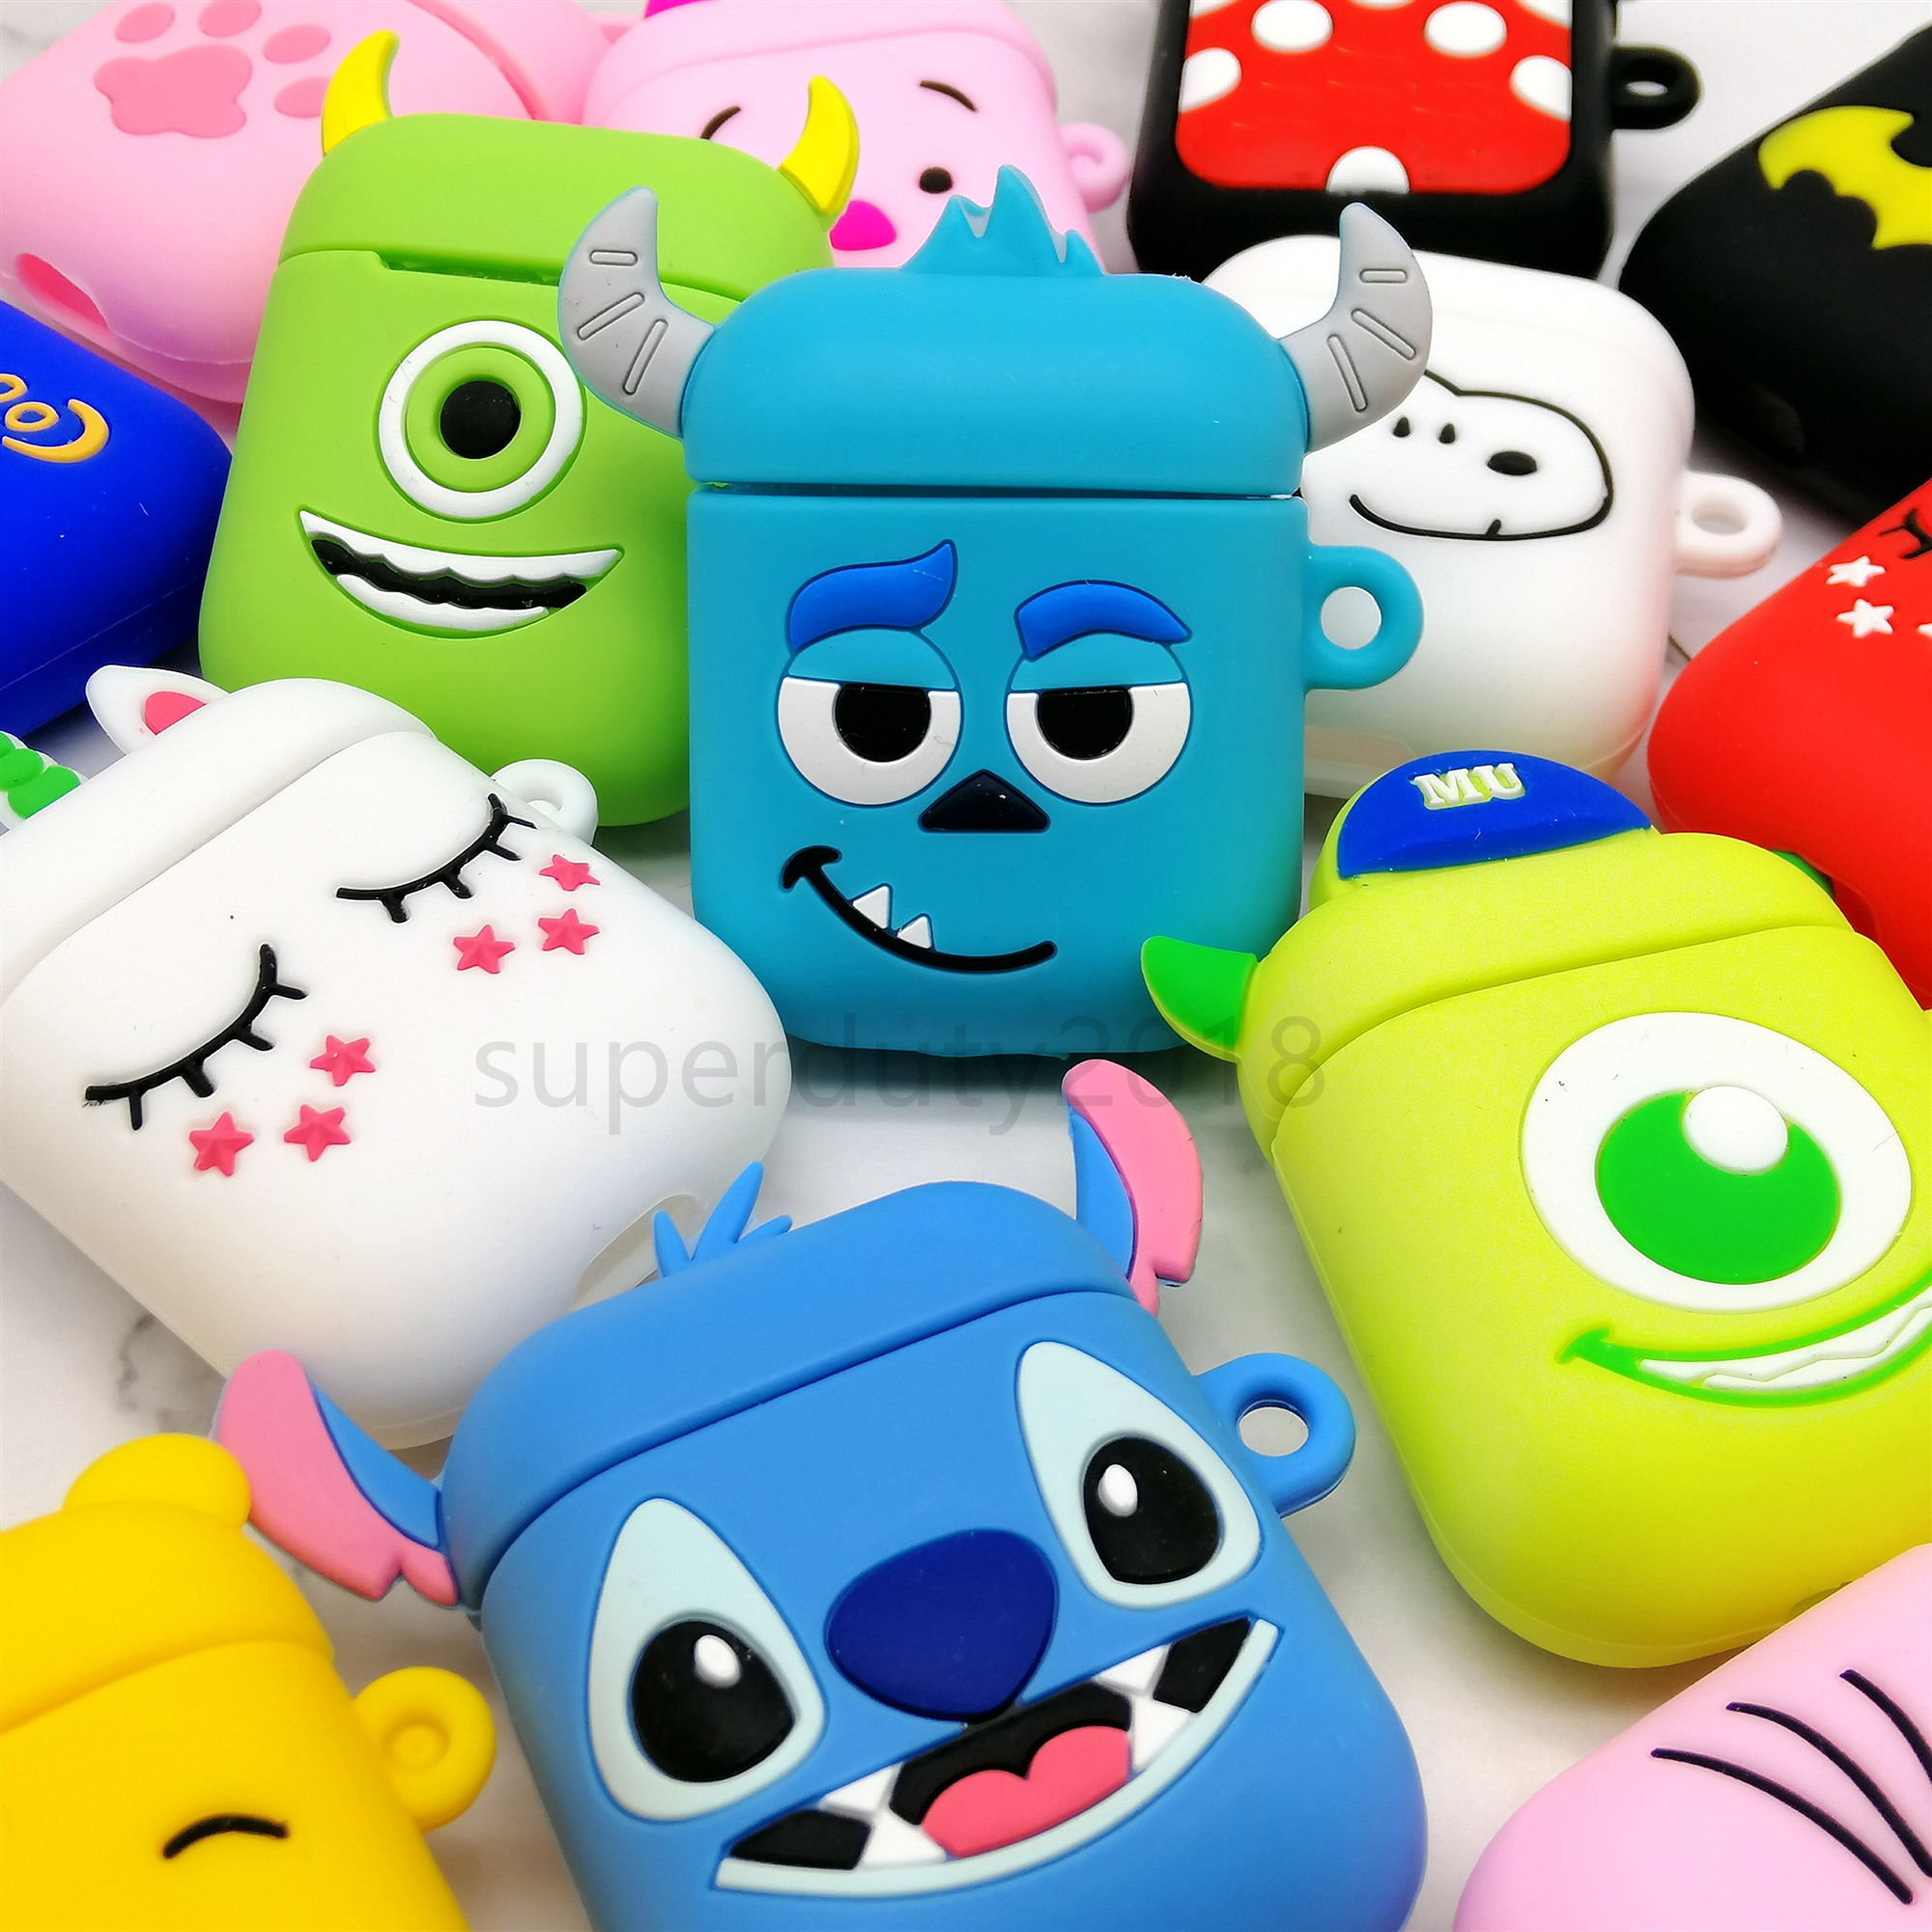 For Airpods 2 Case Silicone Stitch Cartoon Cover Case For Air Pods Cute Earphone Case 3D Headphone Case For Earpods Accessories